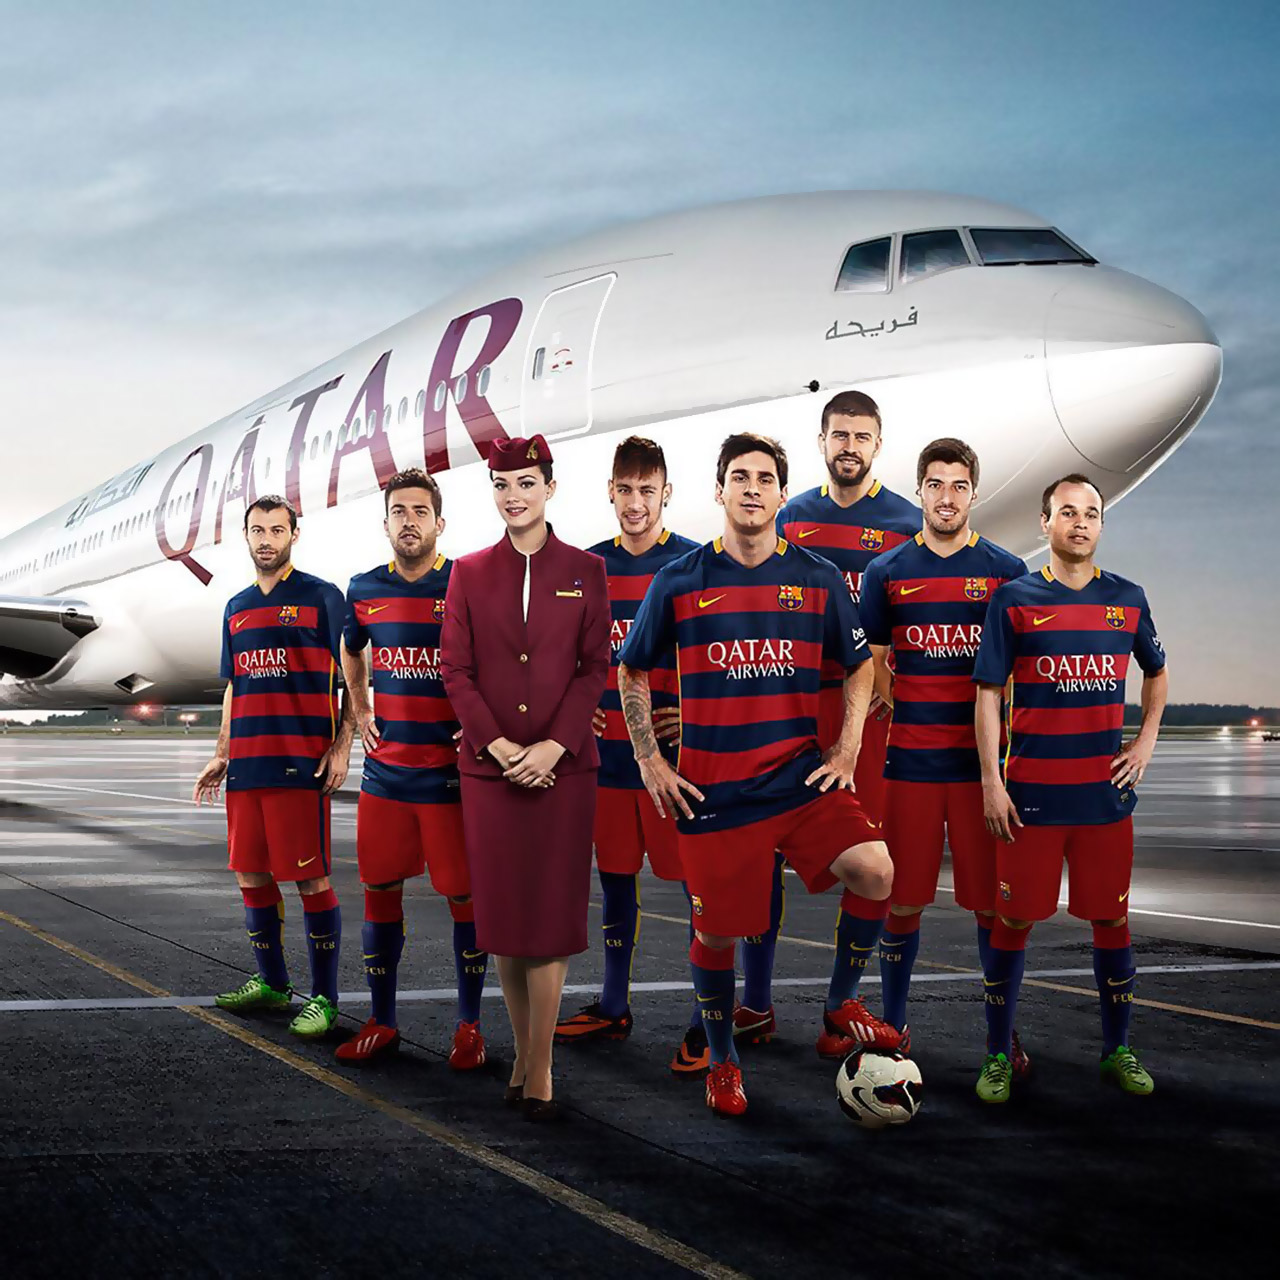 Lionel Messi and FC Barcelona players pose with Qatar Airways jet